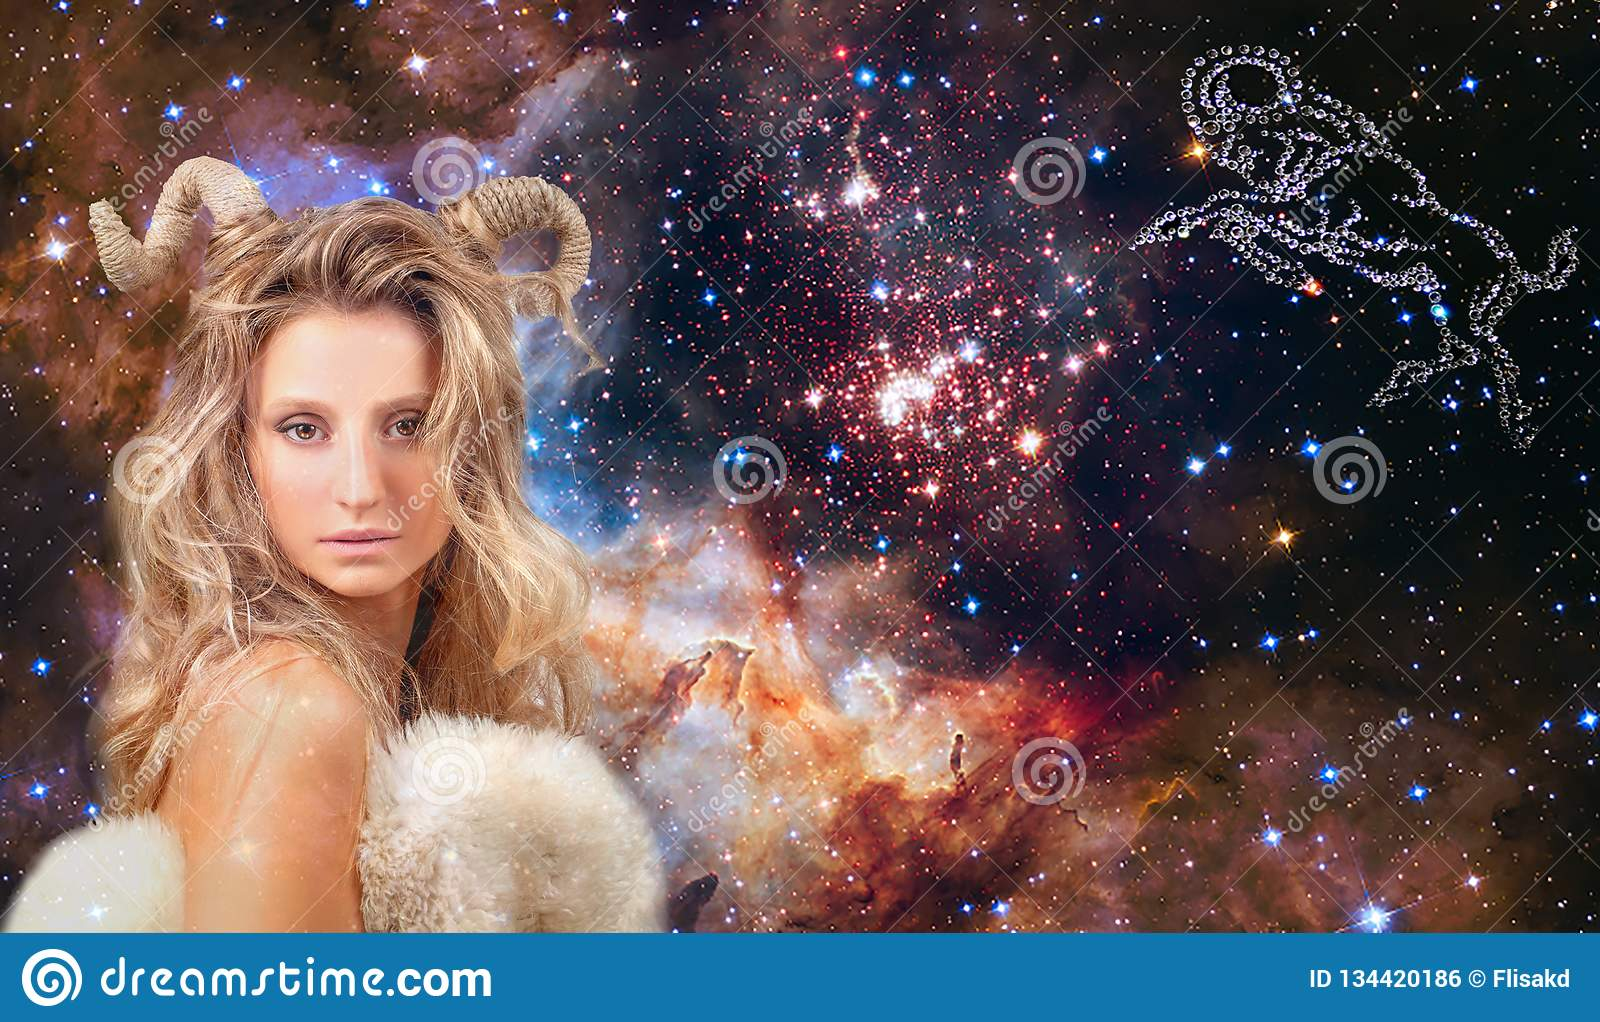 Astrology and horoscope. Aries Zodiac Sign, beautiful woman Aries on the galaxy background